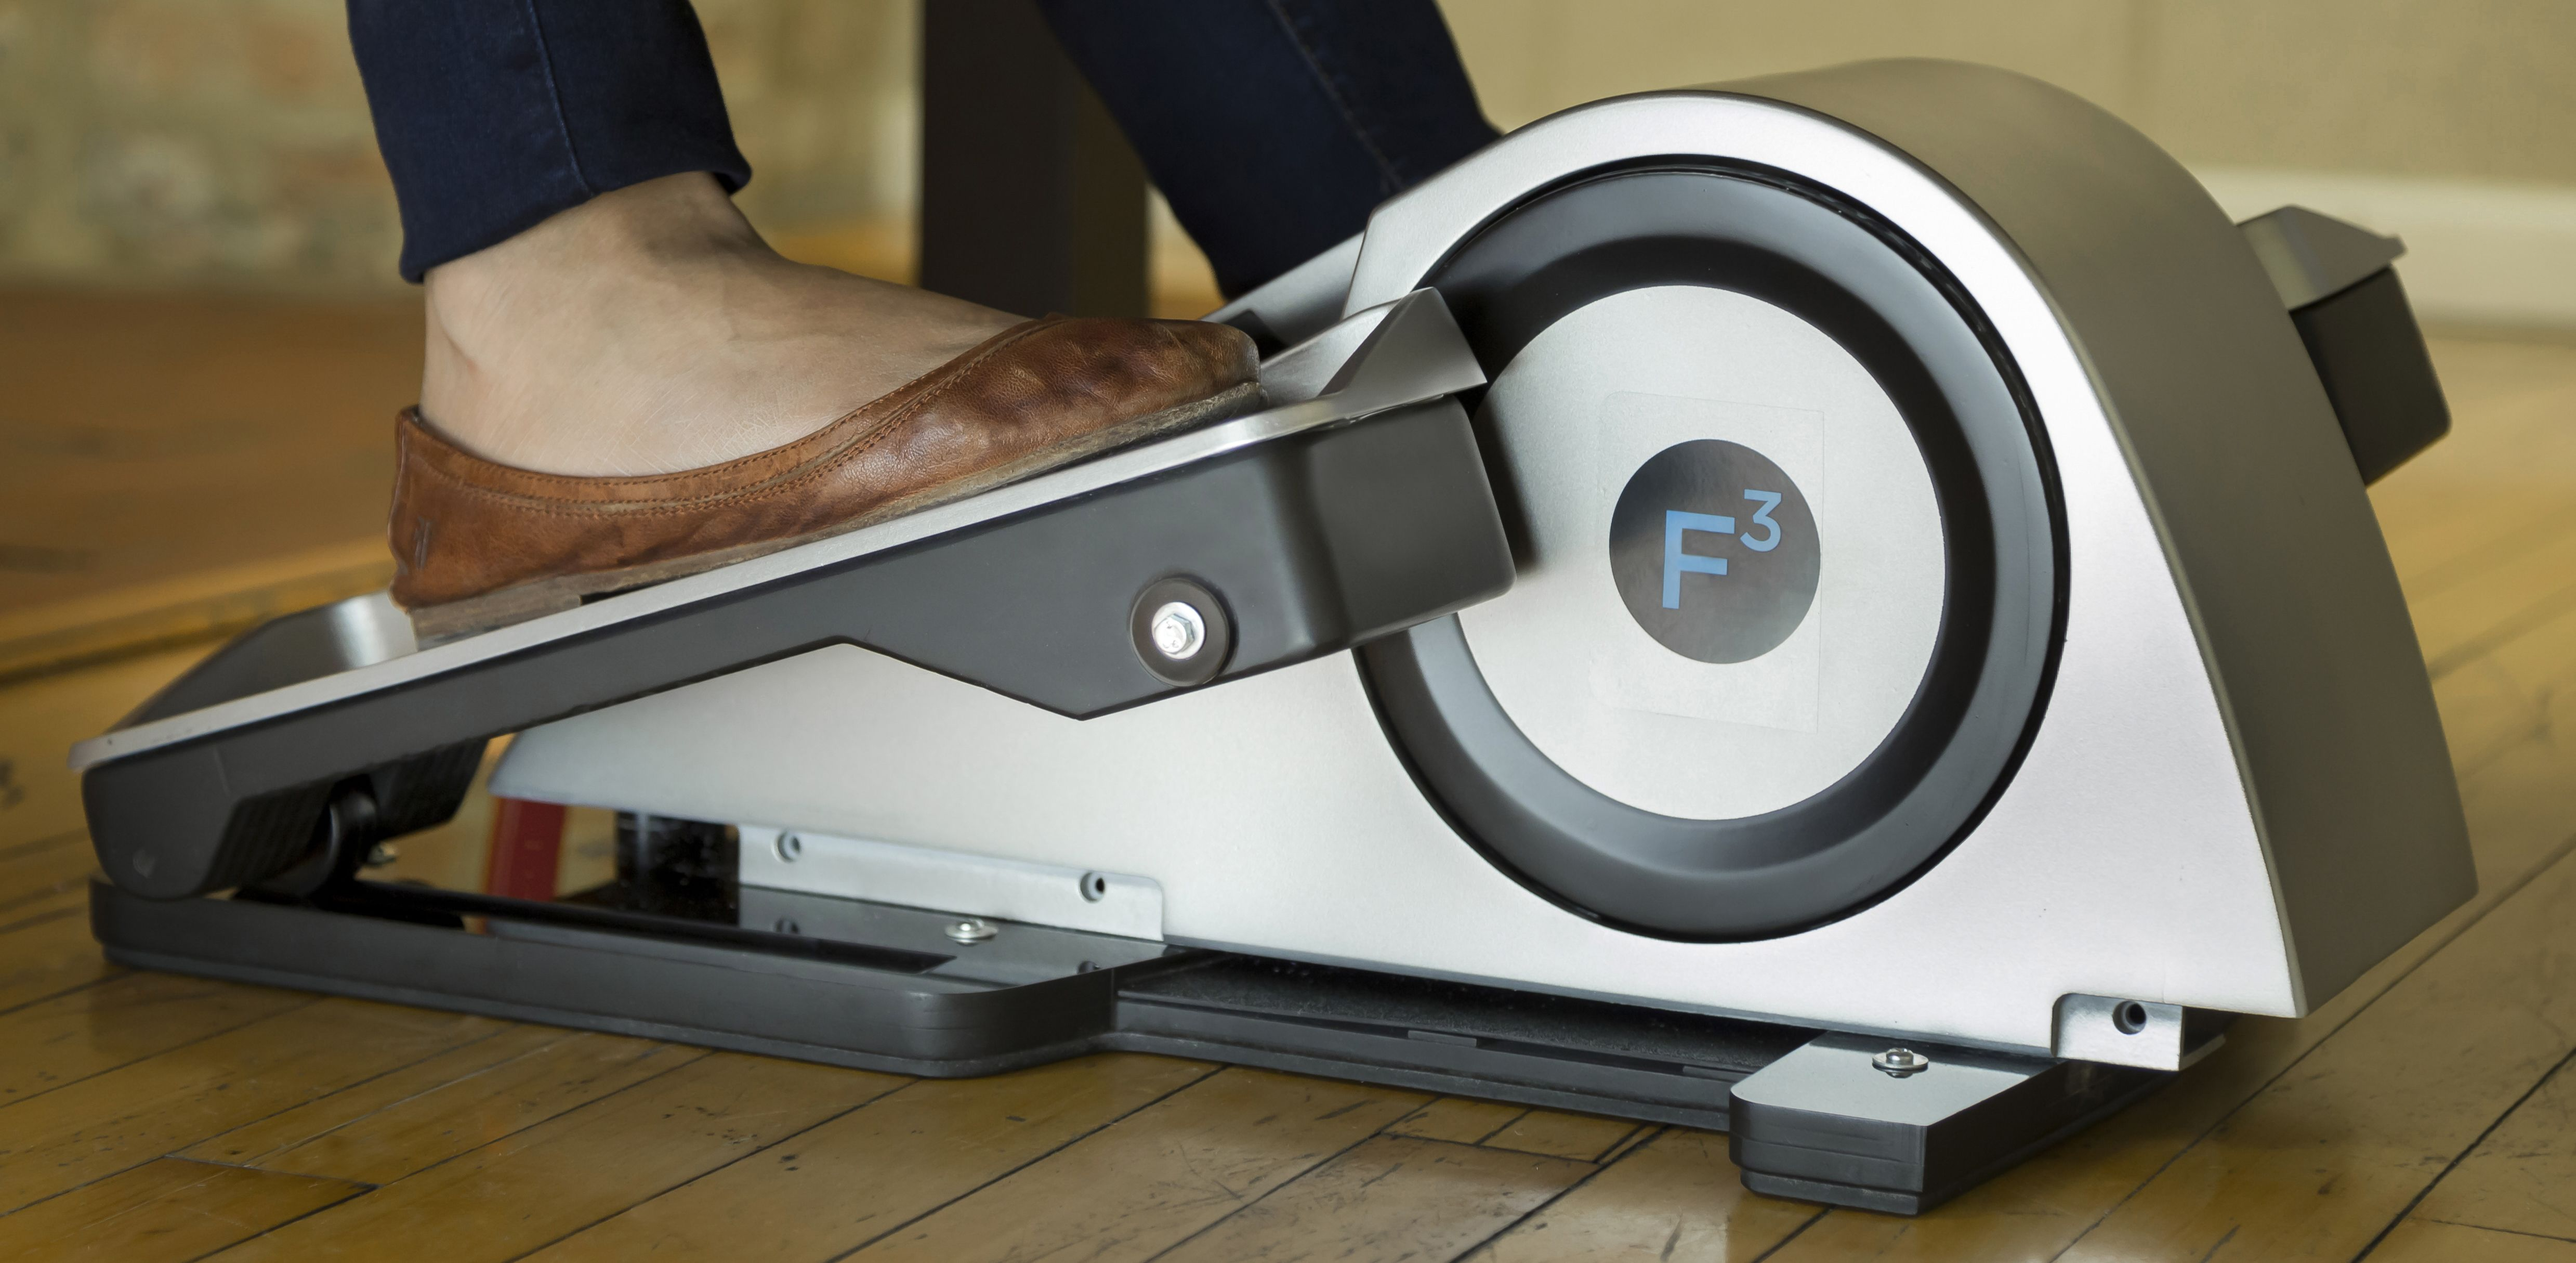 elliptical deals desk healthkit shipped pro under for cubii